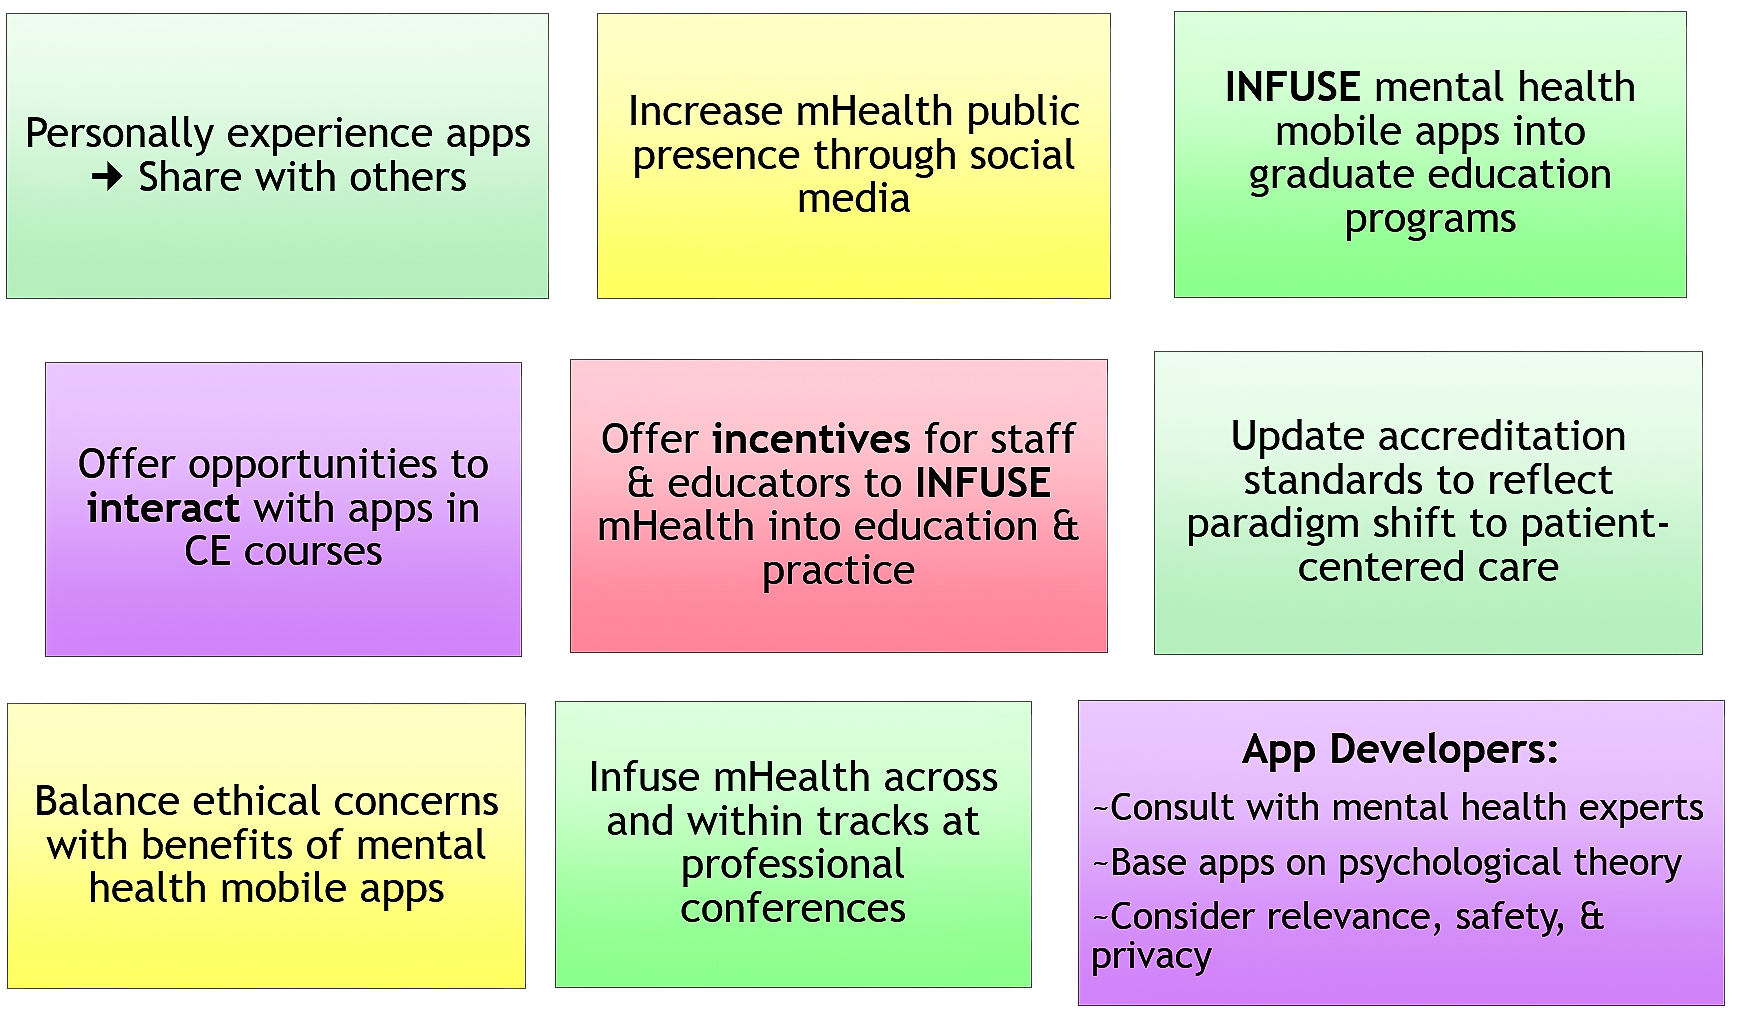 Jmh Mental Health Mobile Apps From Infusion To Diffusion In The